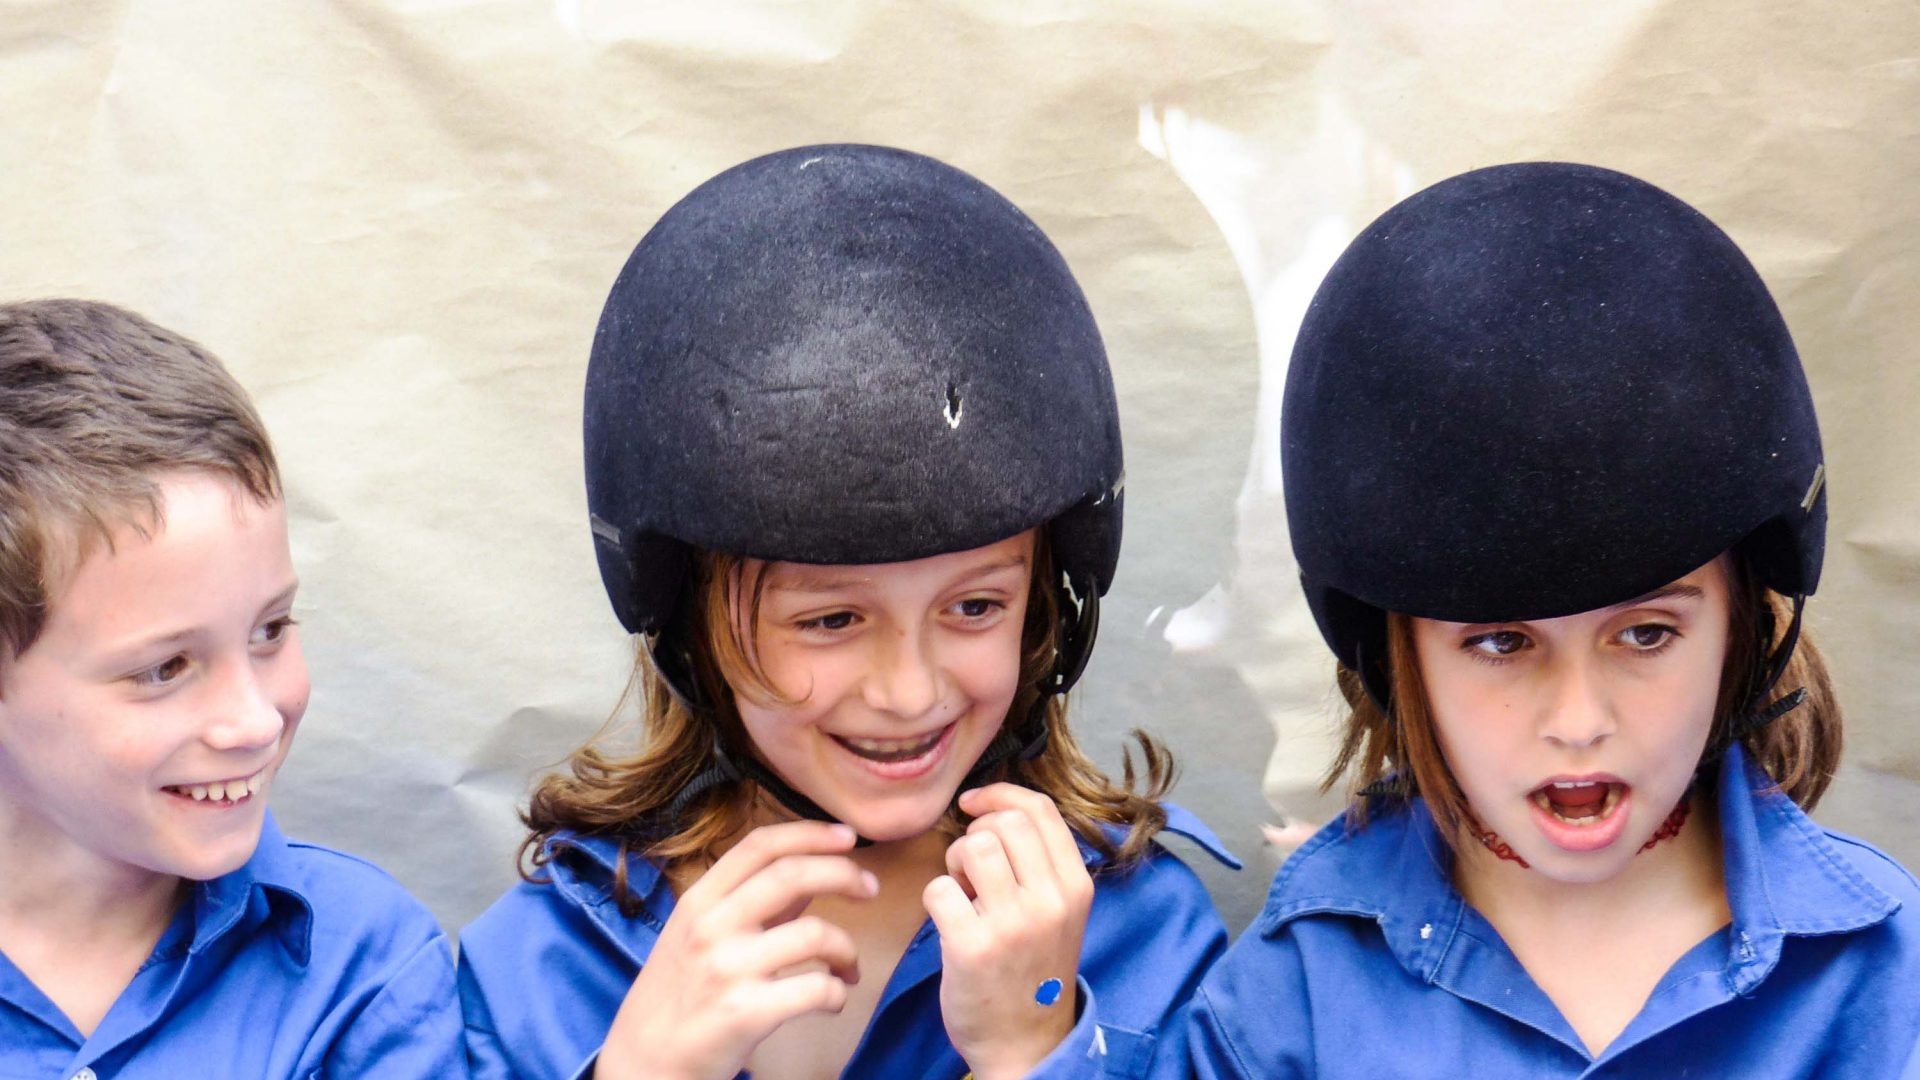 Children who join the castellers now wear helmets after a 12-year-old girl fell to her death in 2006.